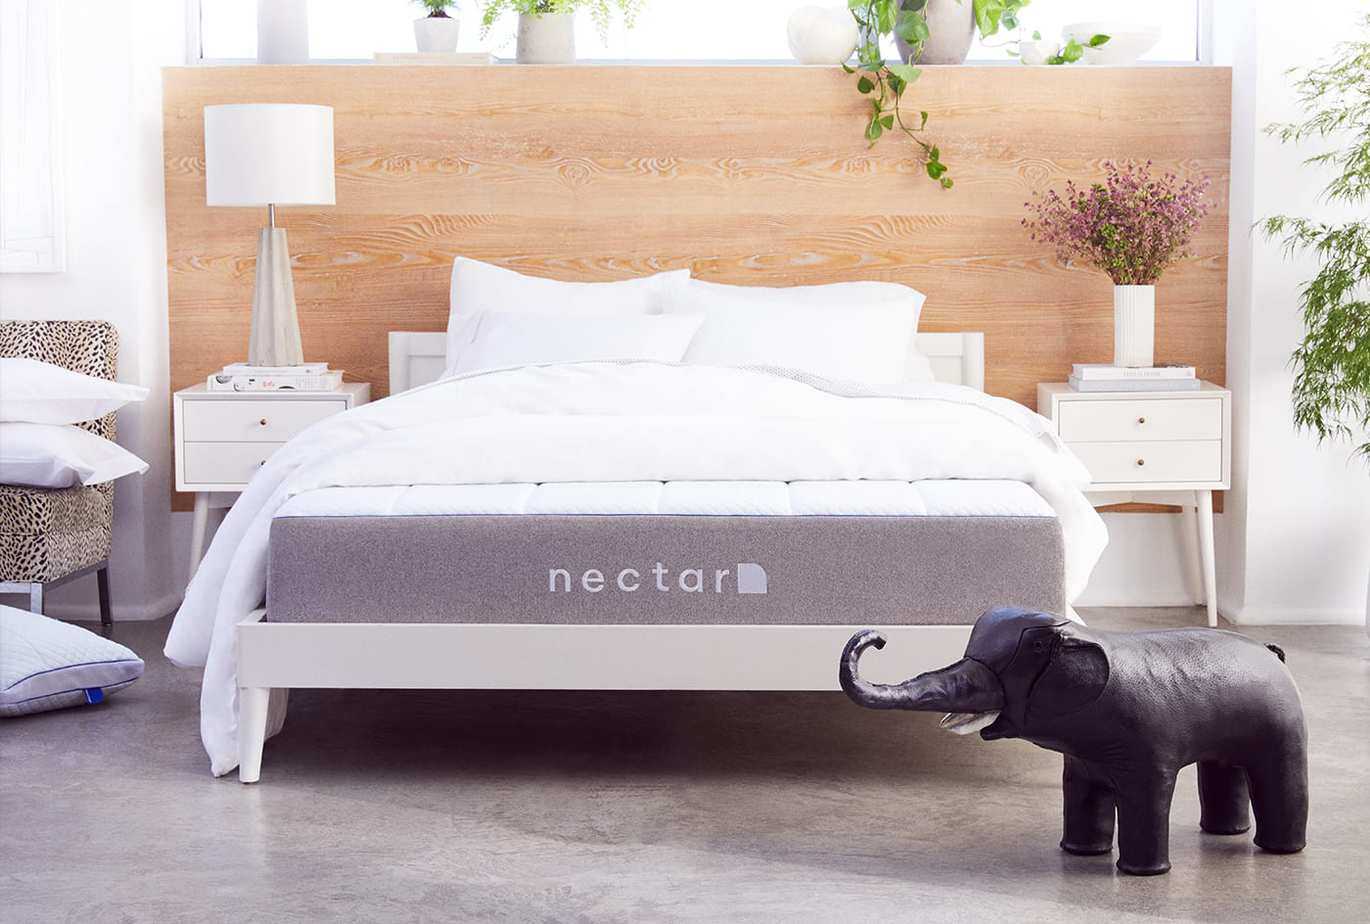 Famous People Who Need A Nap On A Nectar Mattress